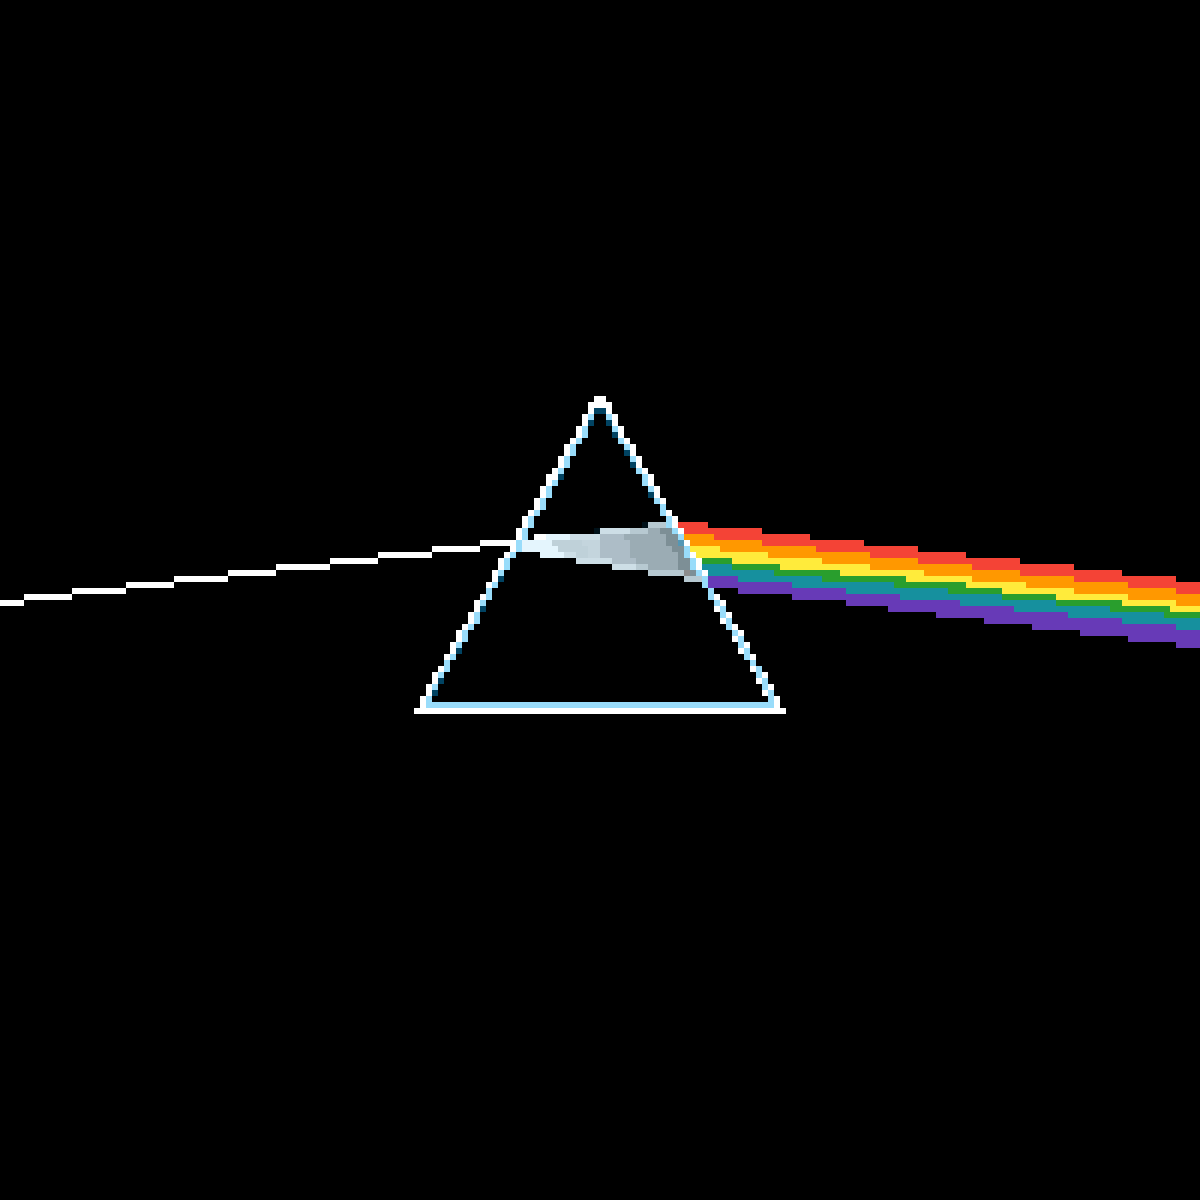 The Dark Side of the Moon by Cosmos16